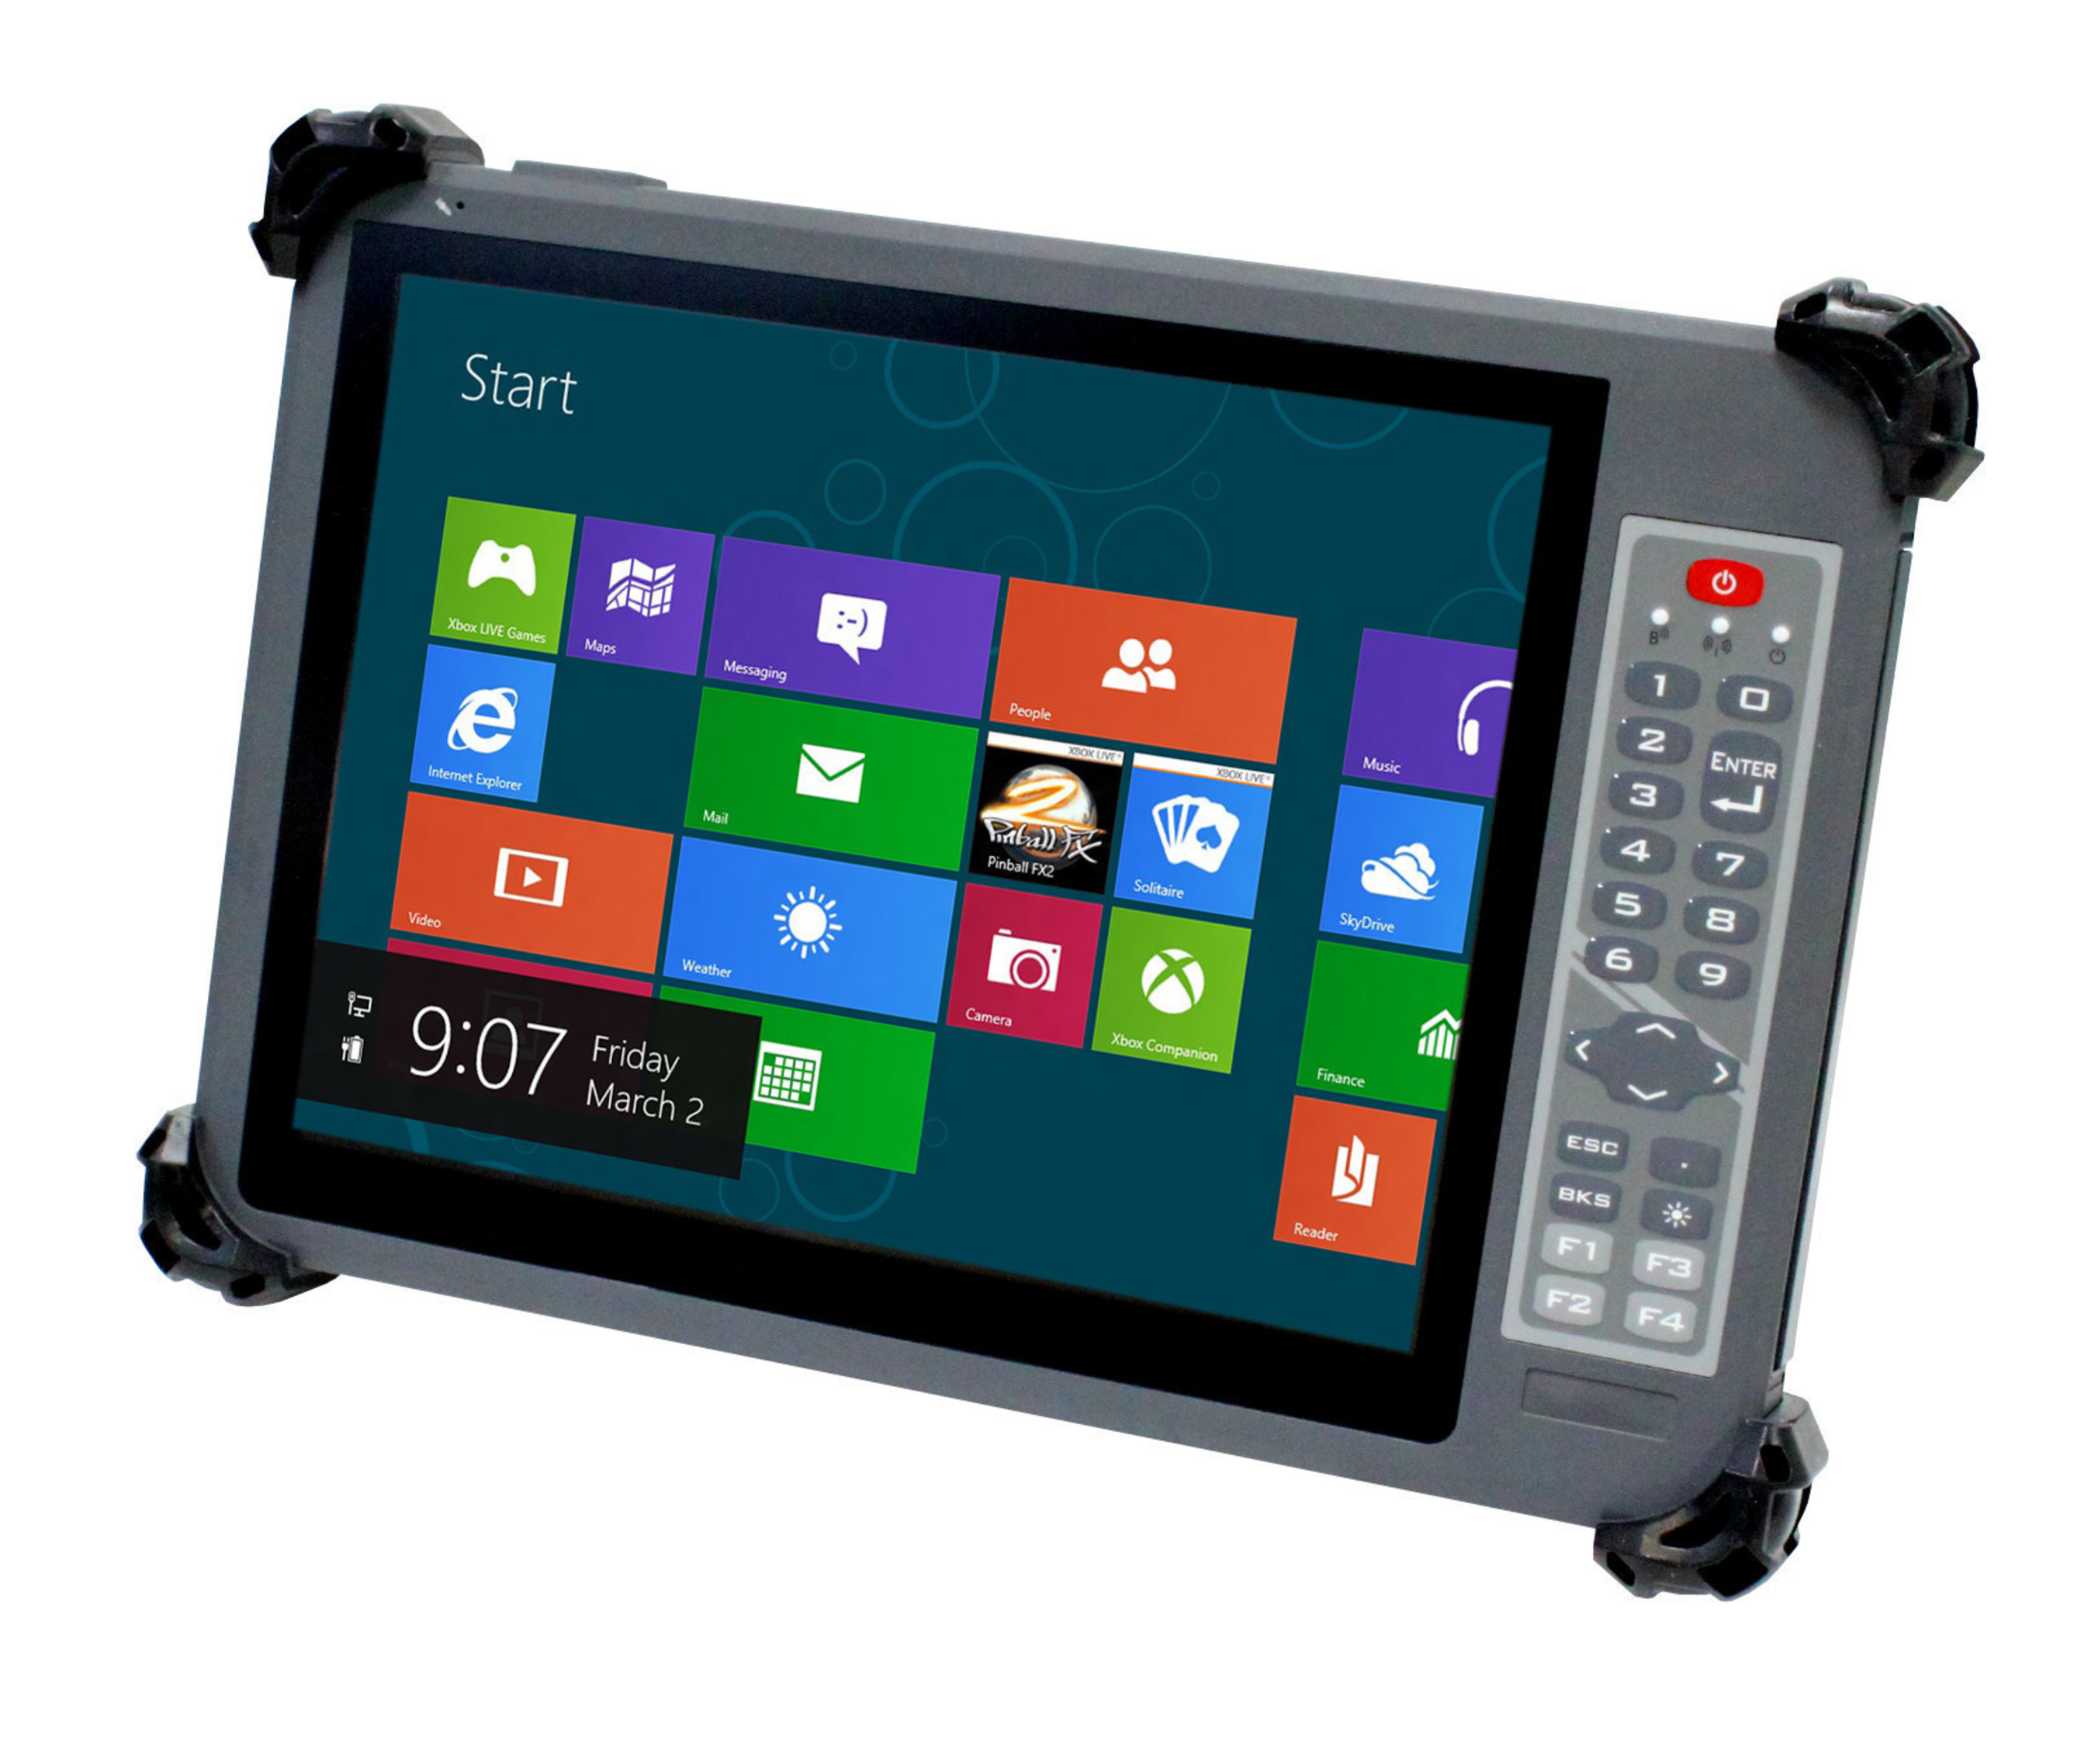 Arbor Gladius G1052C rugged tablet for mobile and portable applications including POS and mPOS.